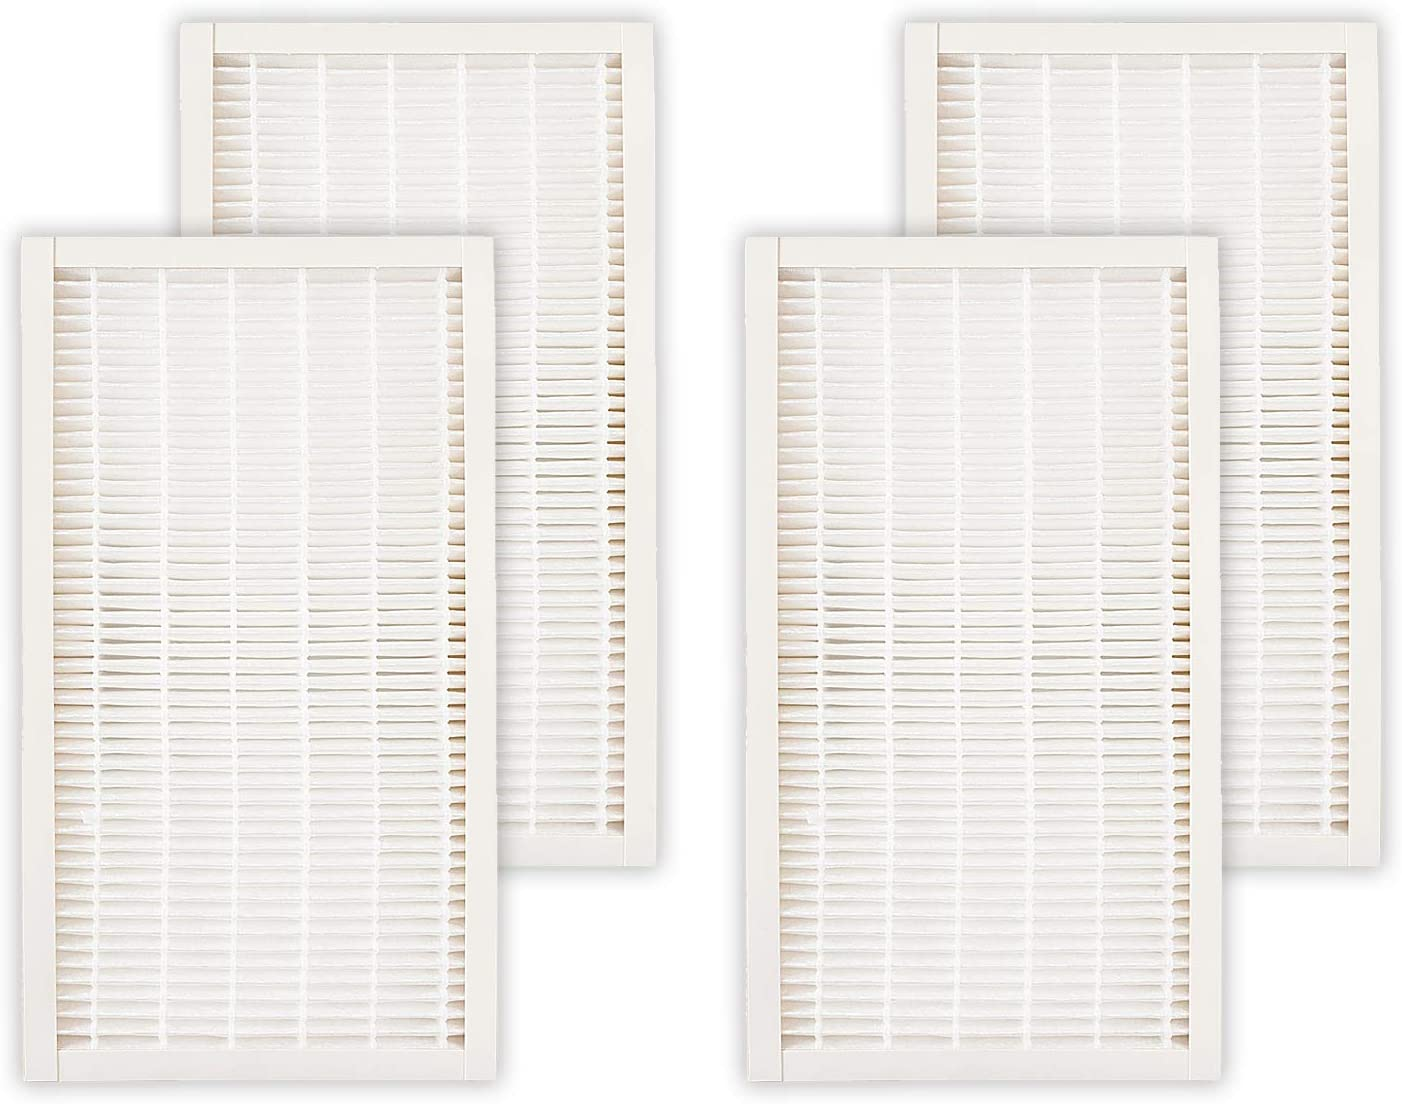 Fette Filter - Allergen Reduction HEPA-Type Room Air Purifier Filter Compatible with Filtrete F1. Compare to Part # FAPF-F1-A F1 for Room Air Purifier Devices FAP-C01-F1 & FAP-T02-F1 4 Pack